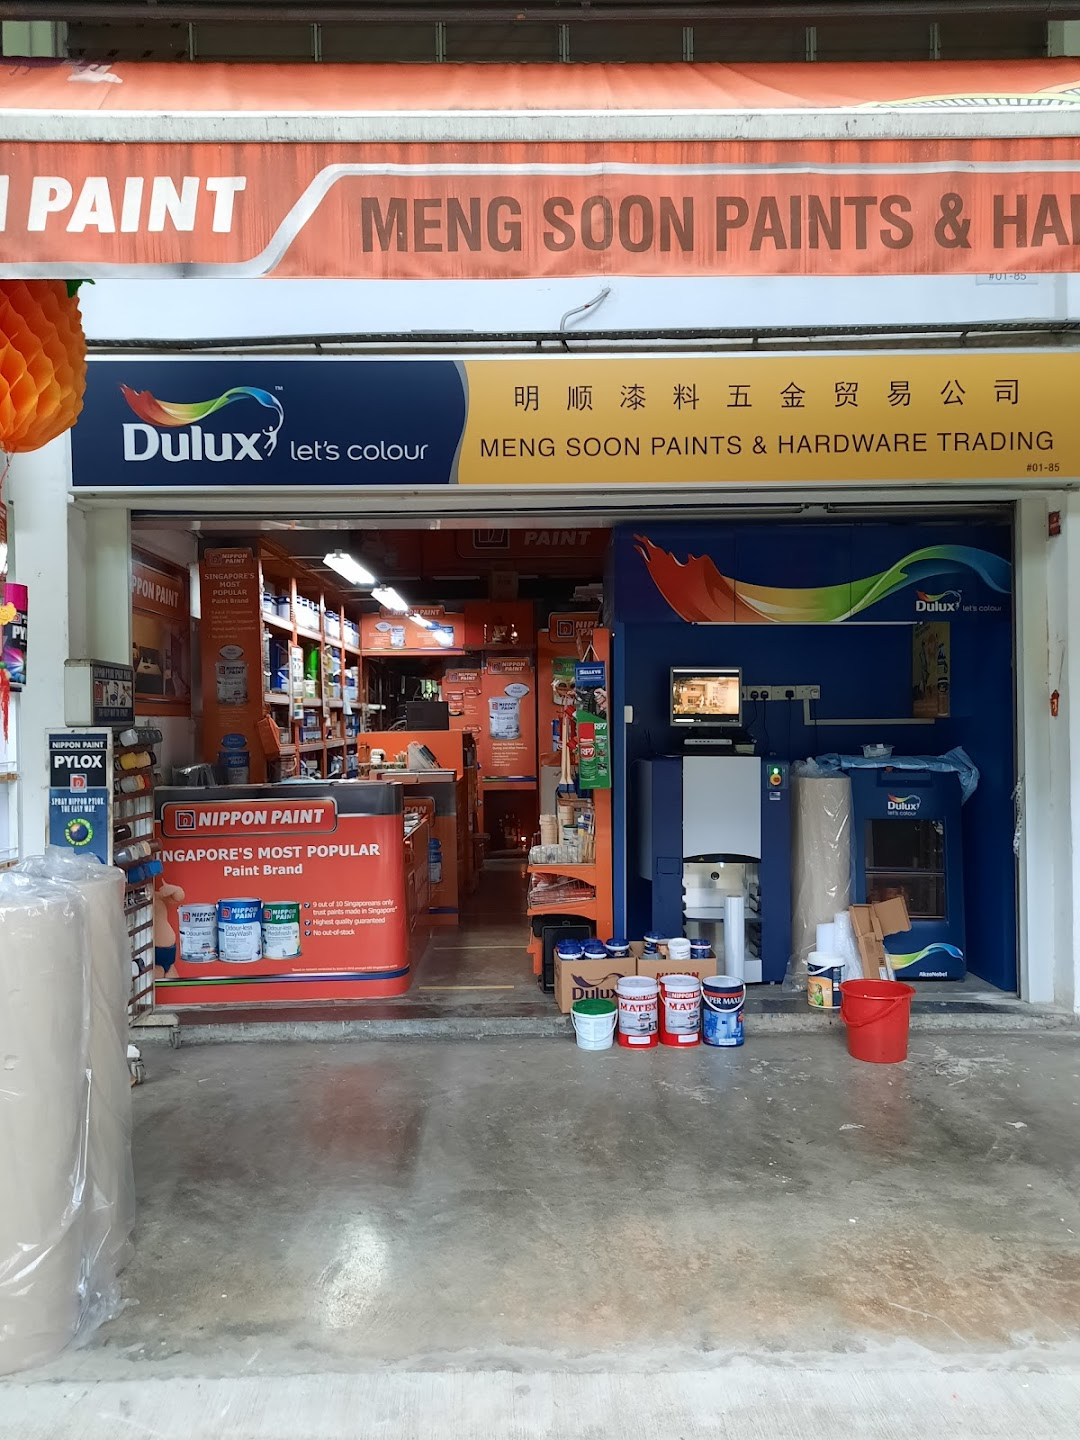 Meng Soon Paints & Hardware Trading